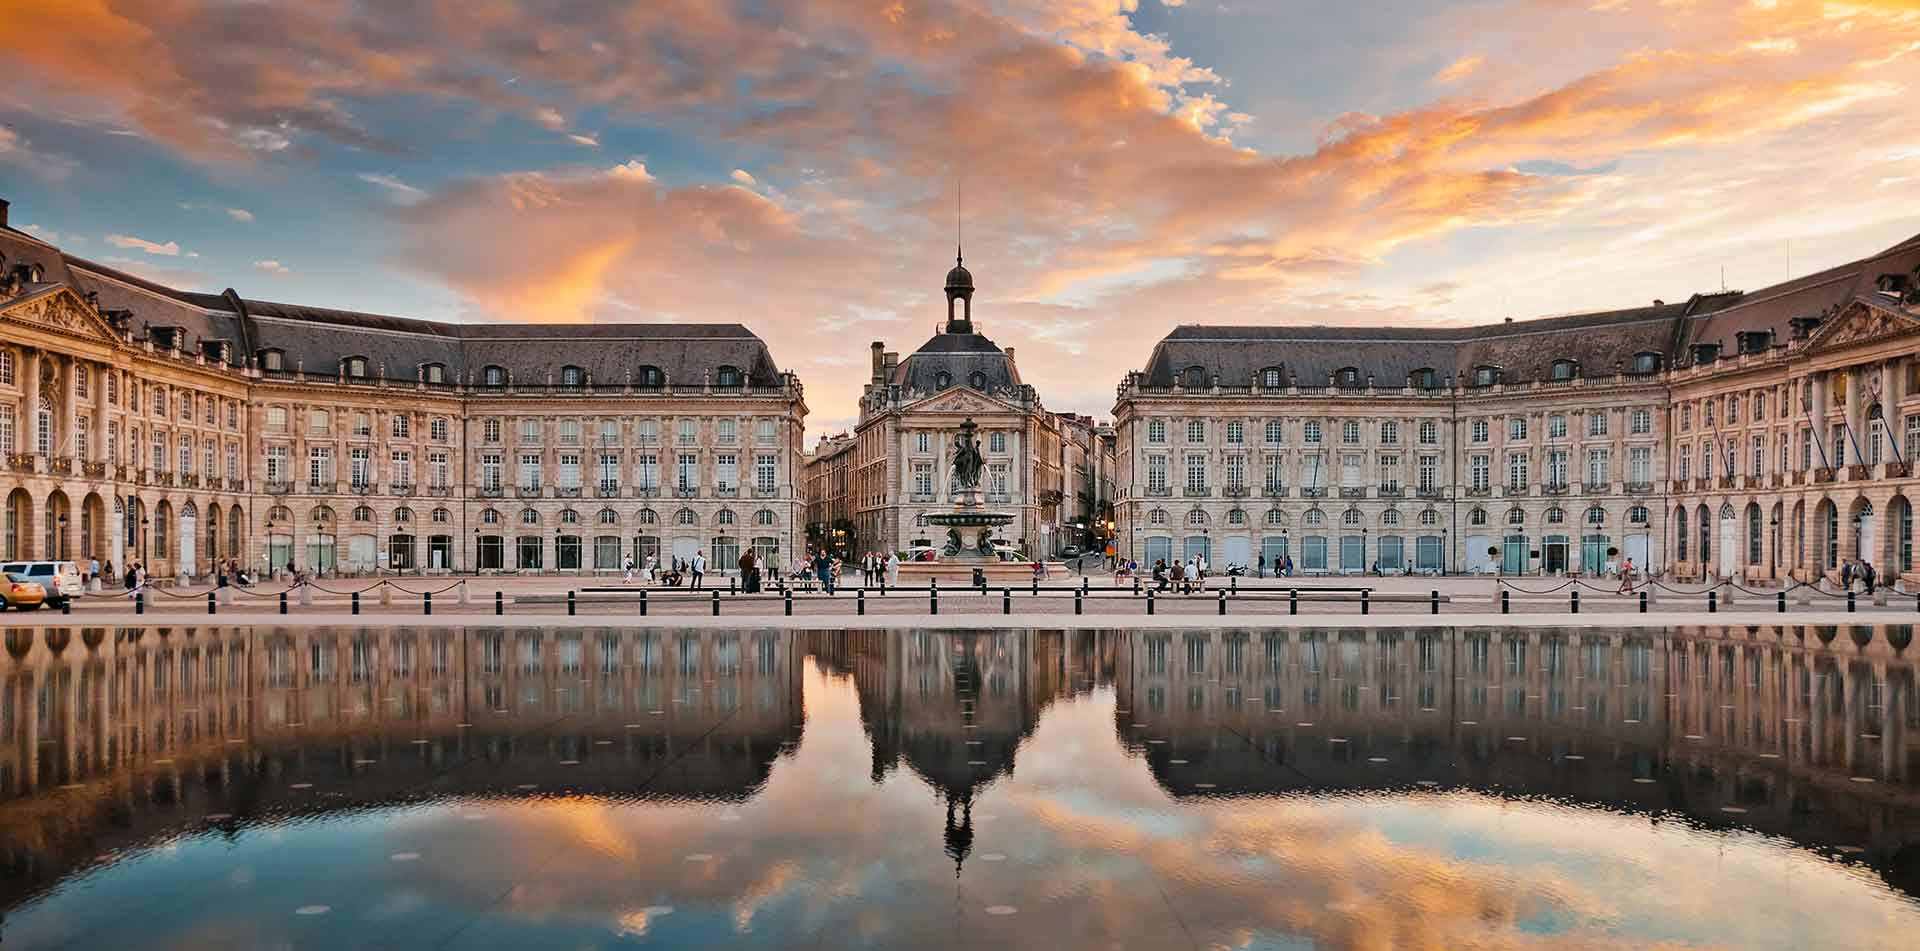 Europe France Bordeaux city center medieval quaint beautiful coastline - luxury vacation destinations